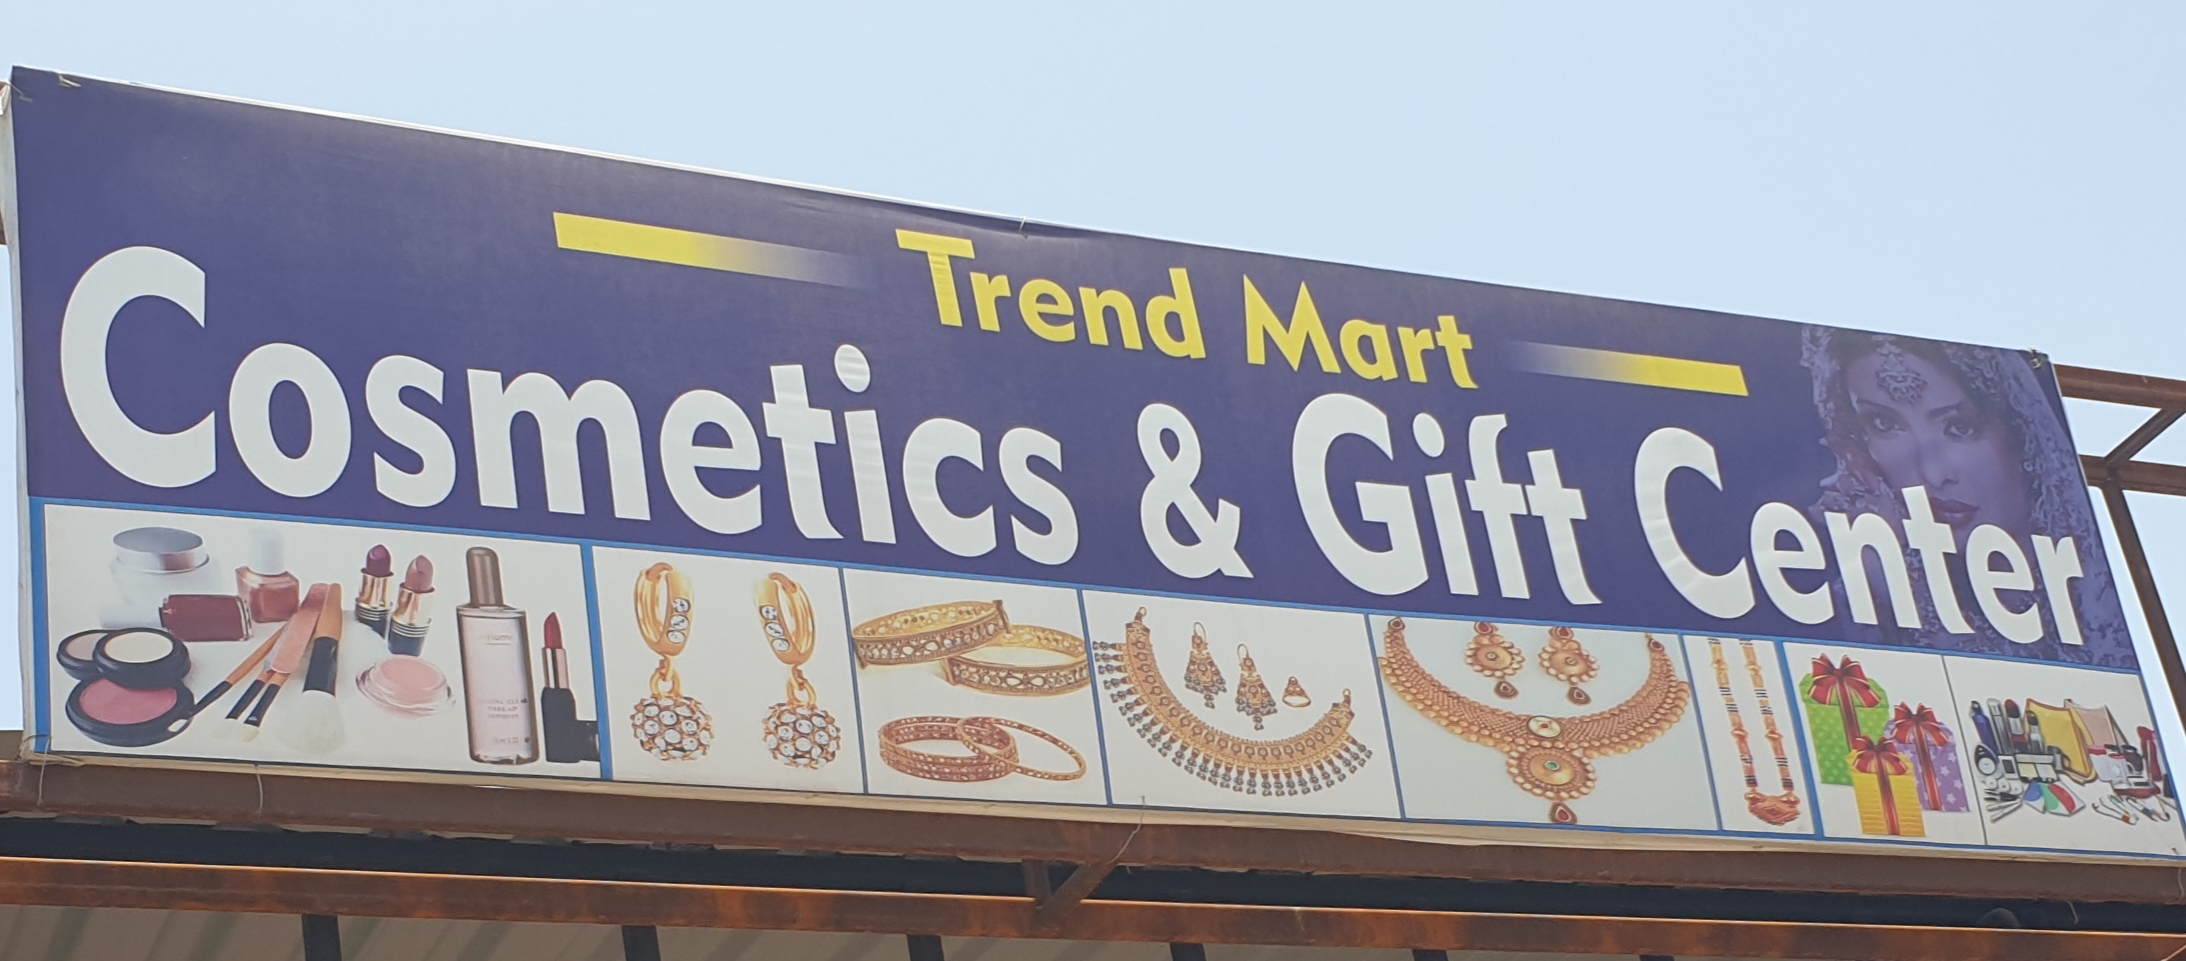 Trend mart Cosmetics Shops in Wagholi Pune